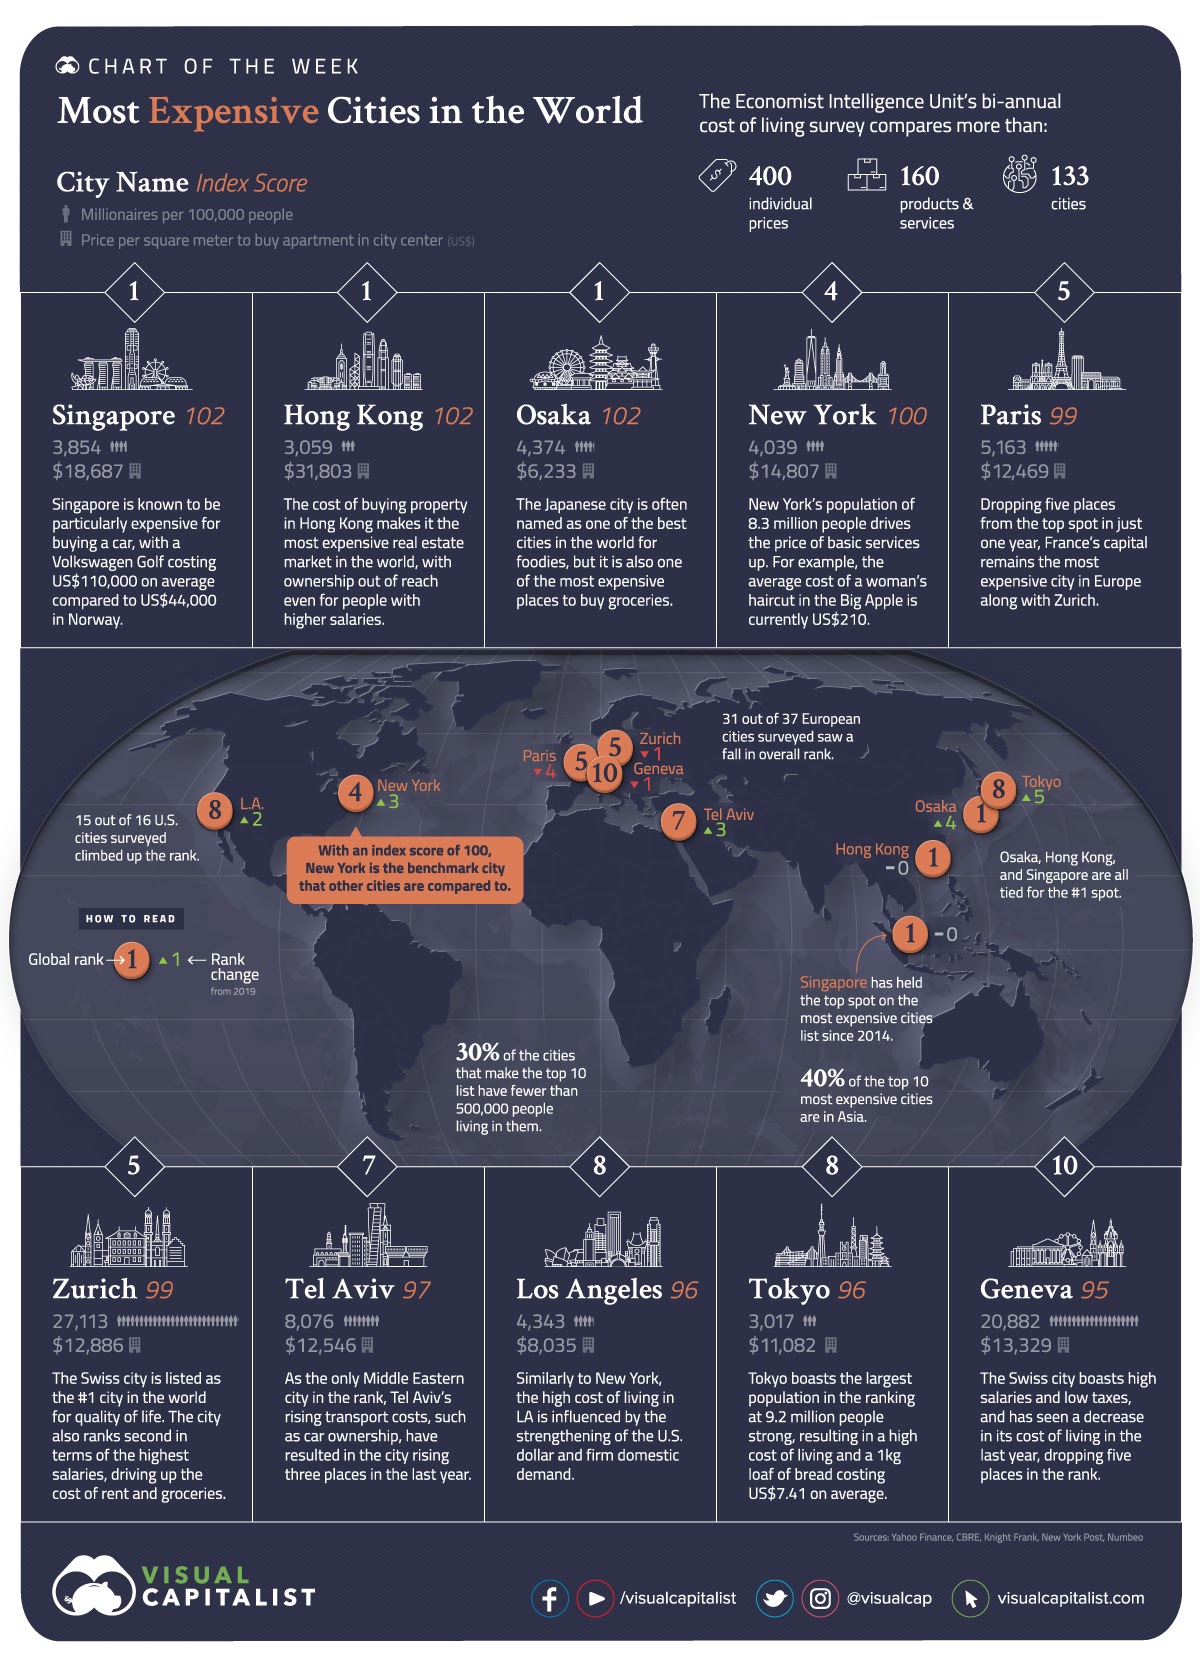 Most Expansive Cities In The World #infographic